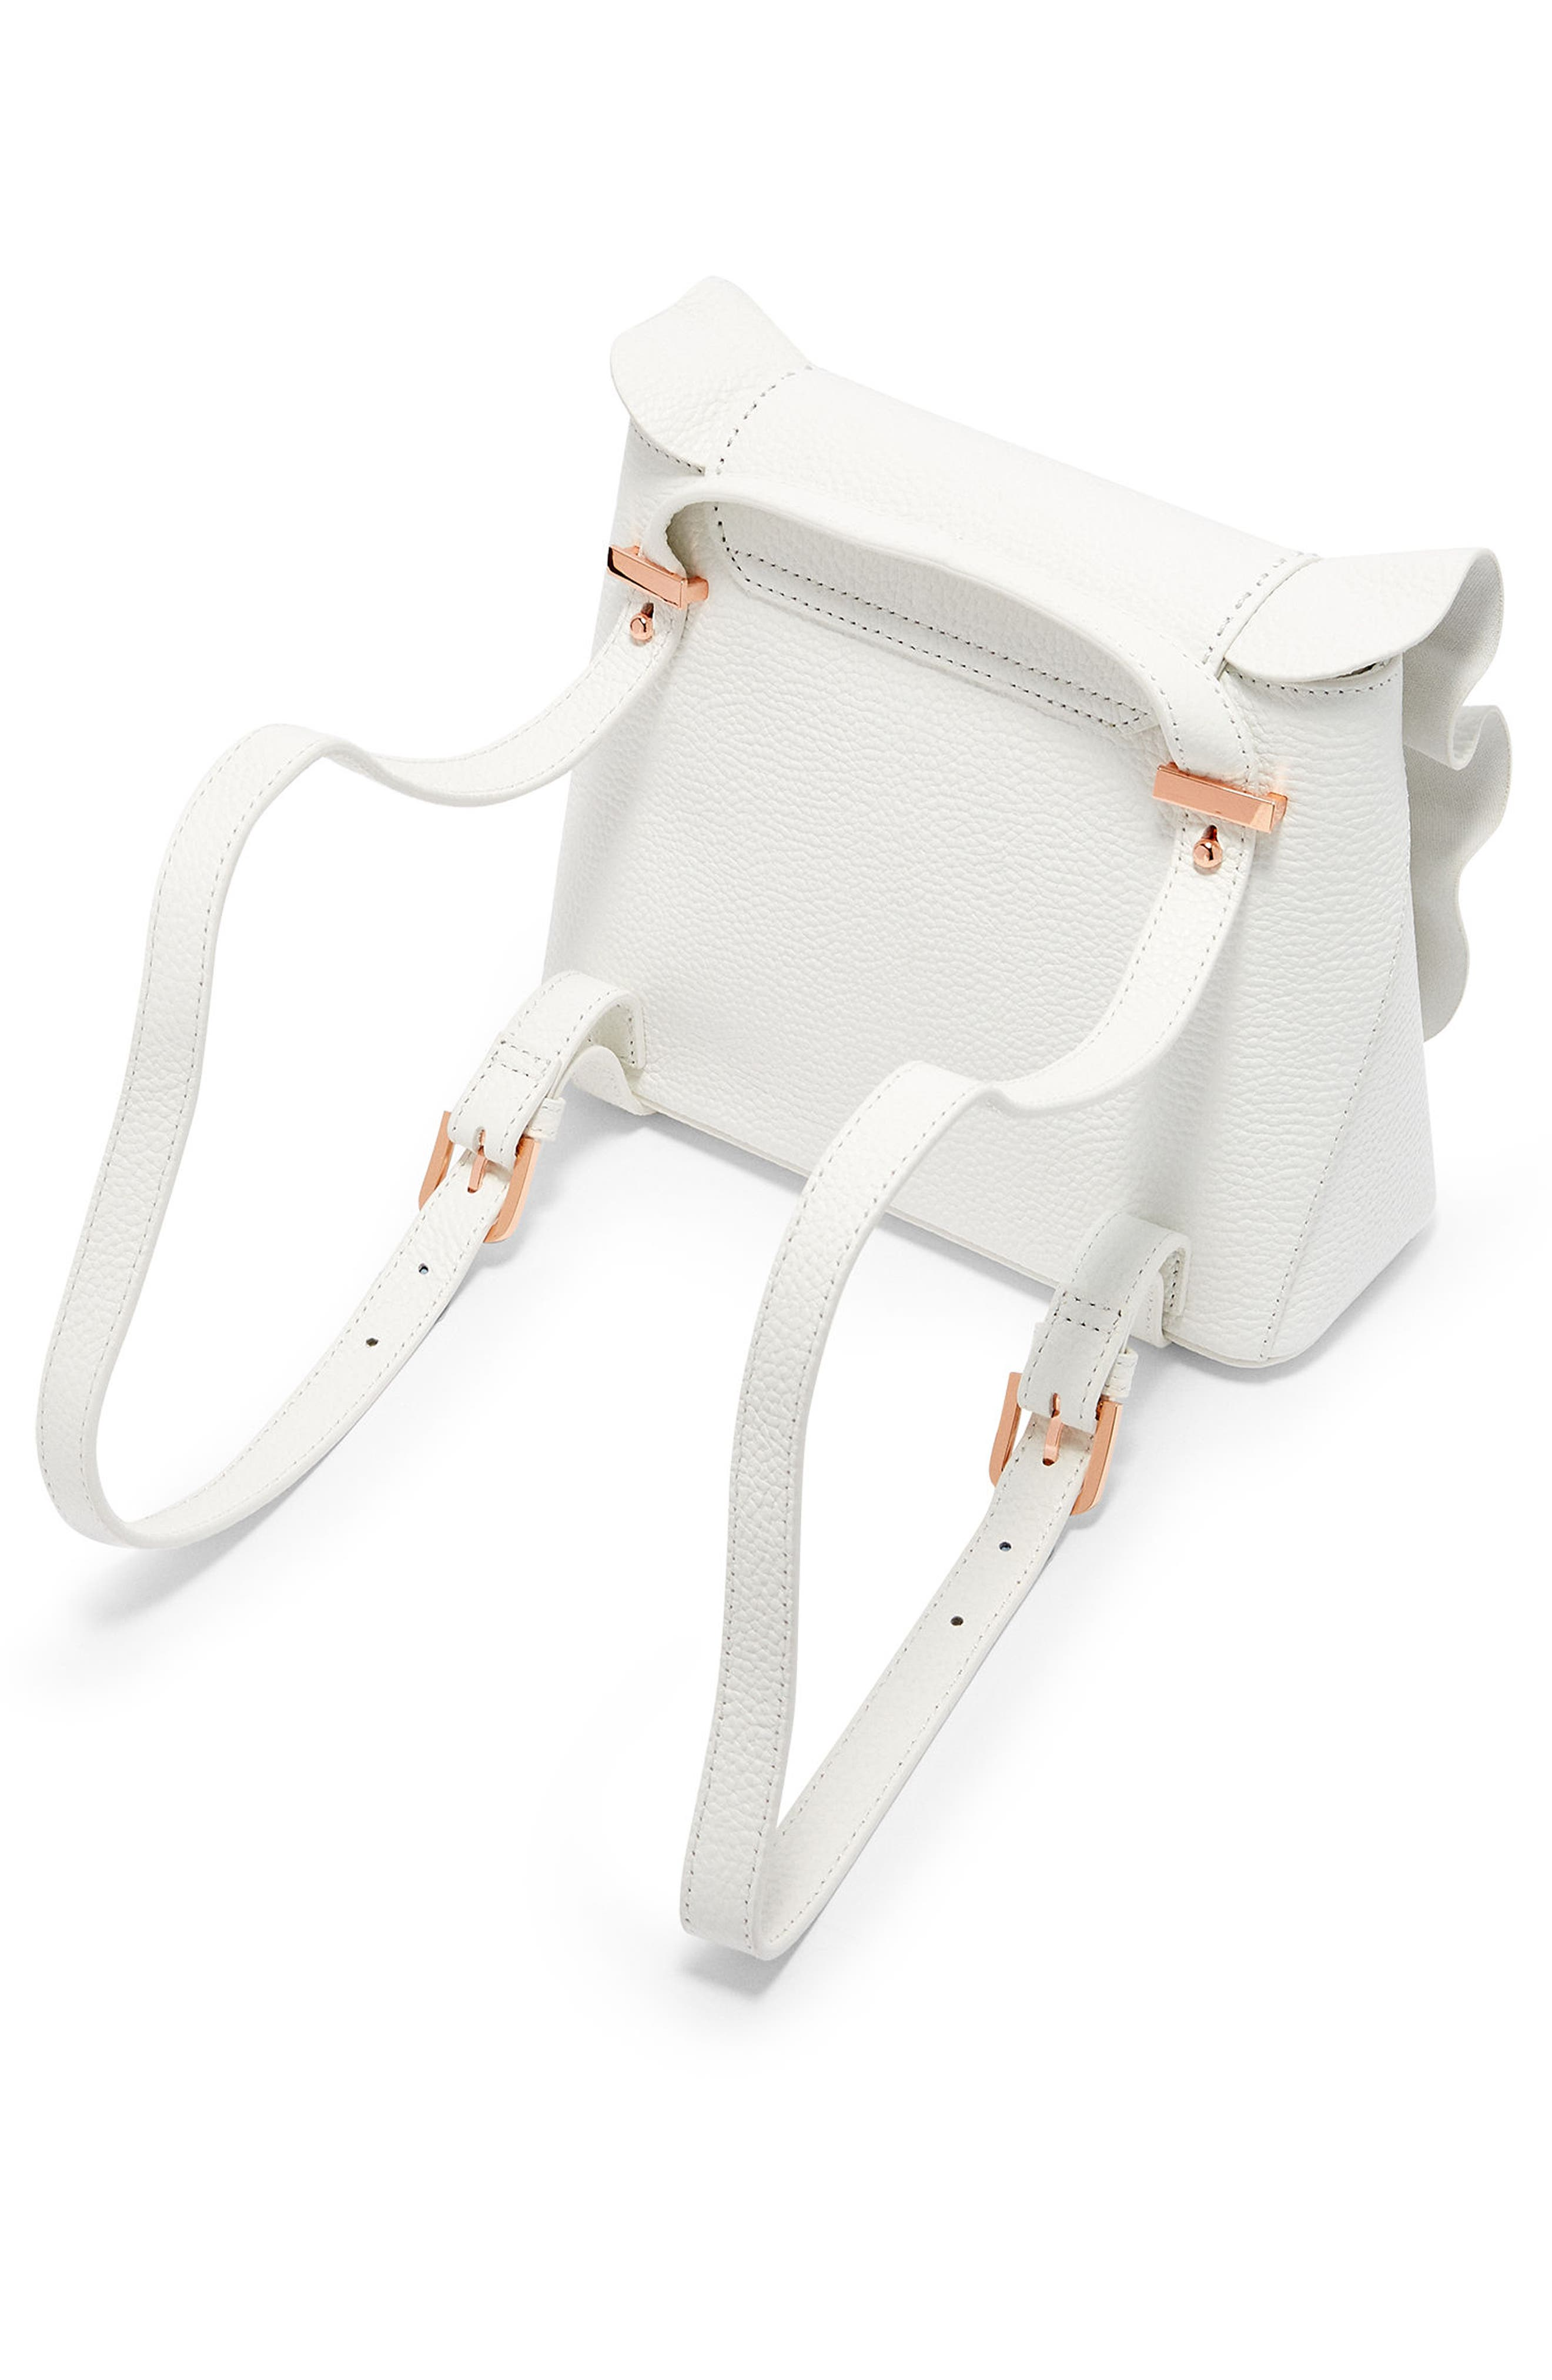 Rammira Leather Convertible Backpack,                             Alternate thumbnail 2, color,                             WHITE